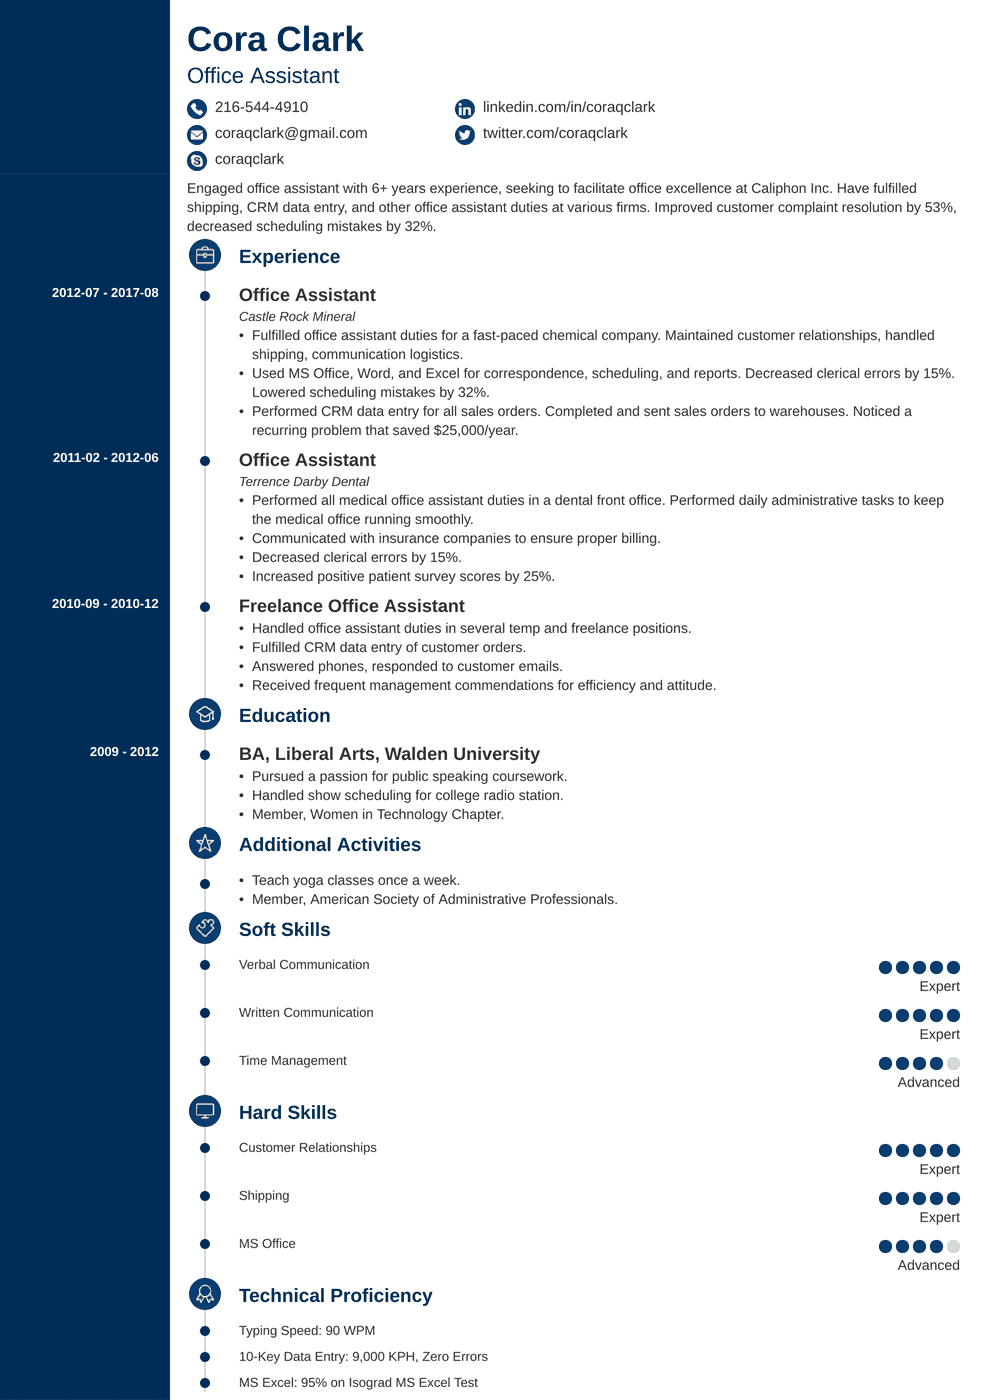 Office Assistant Resume: Sample & Complete Guide [+20 Examples]